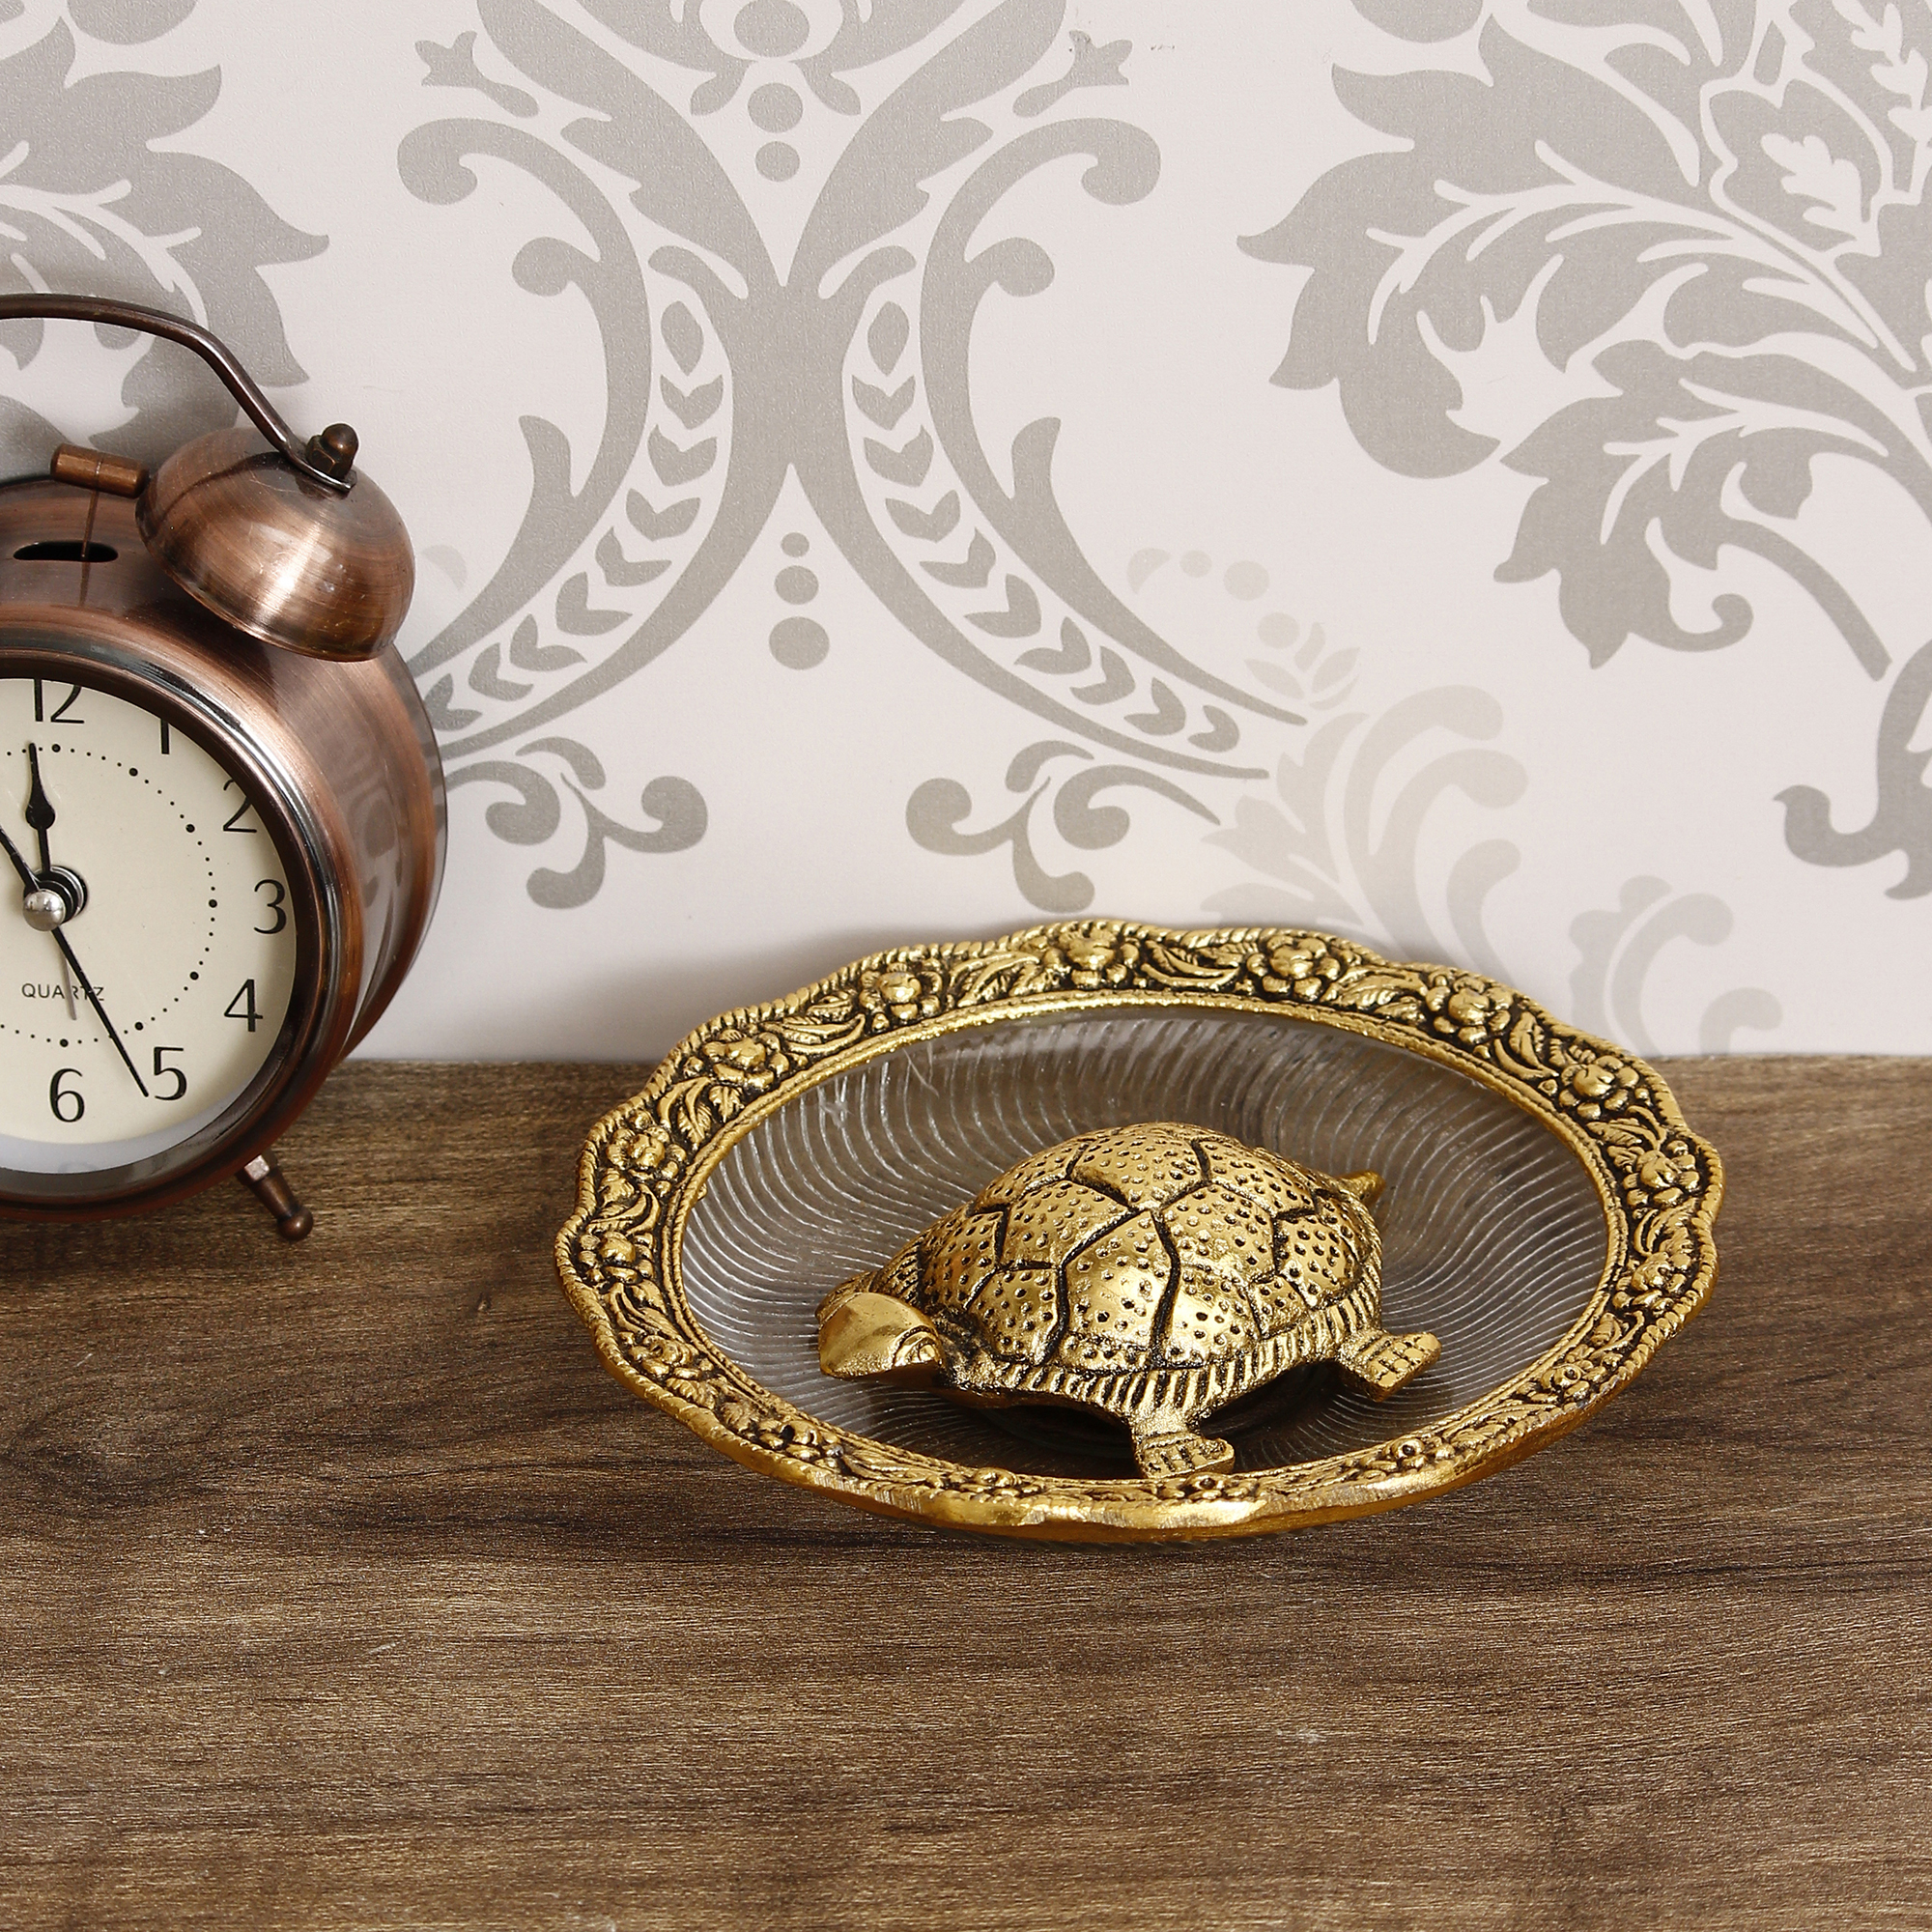 Golden Tortoise Feng Shui Metal and Crystal Showpiece Indian Home Decor